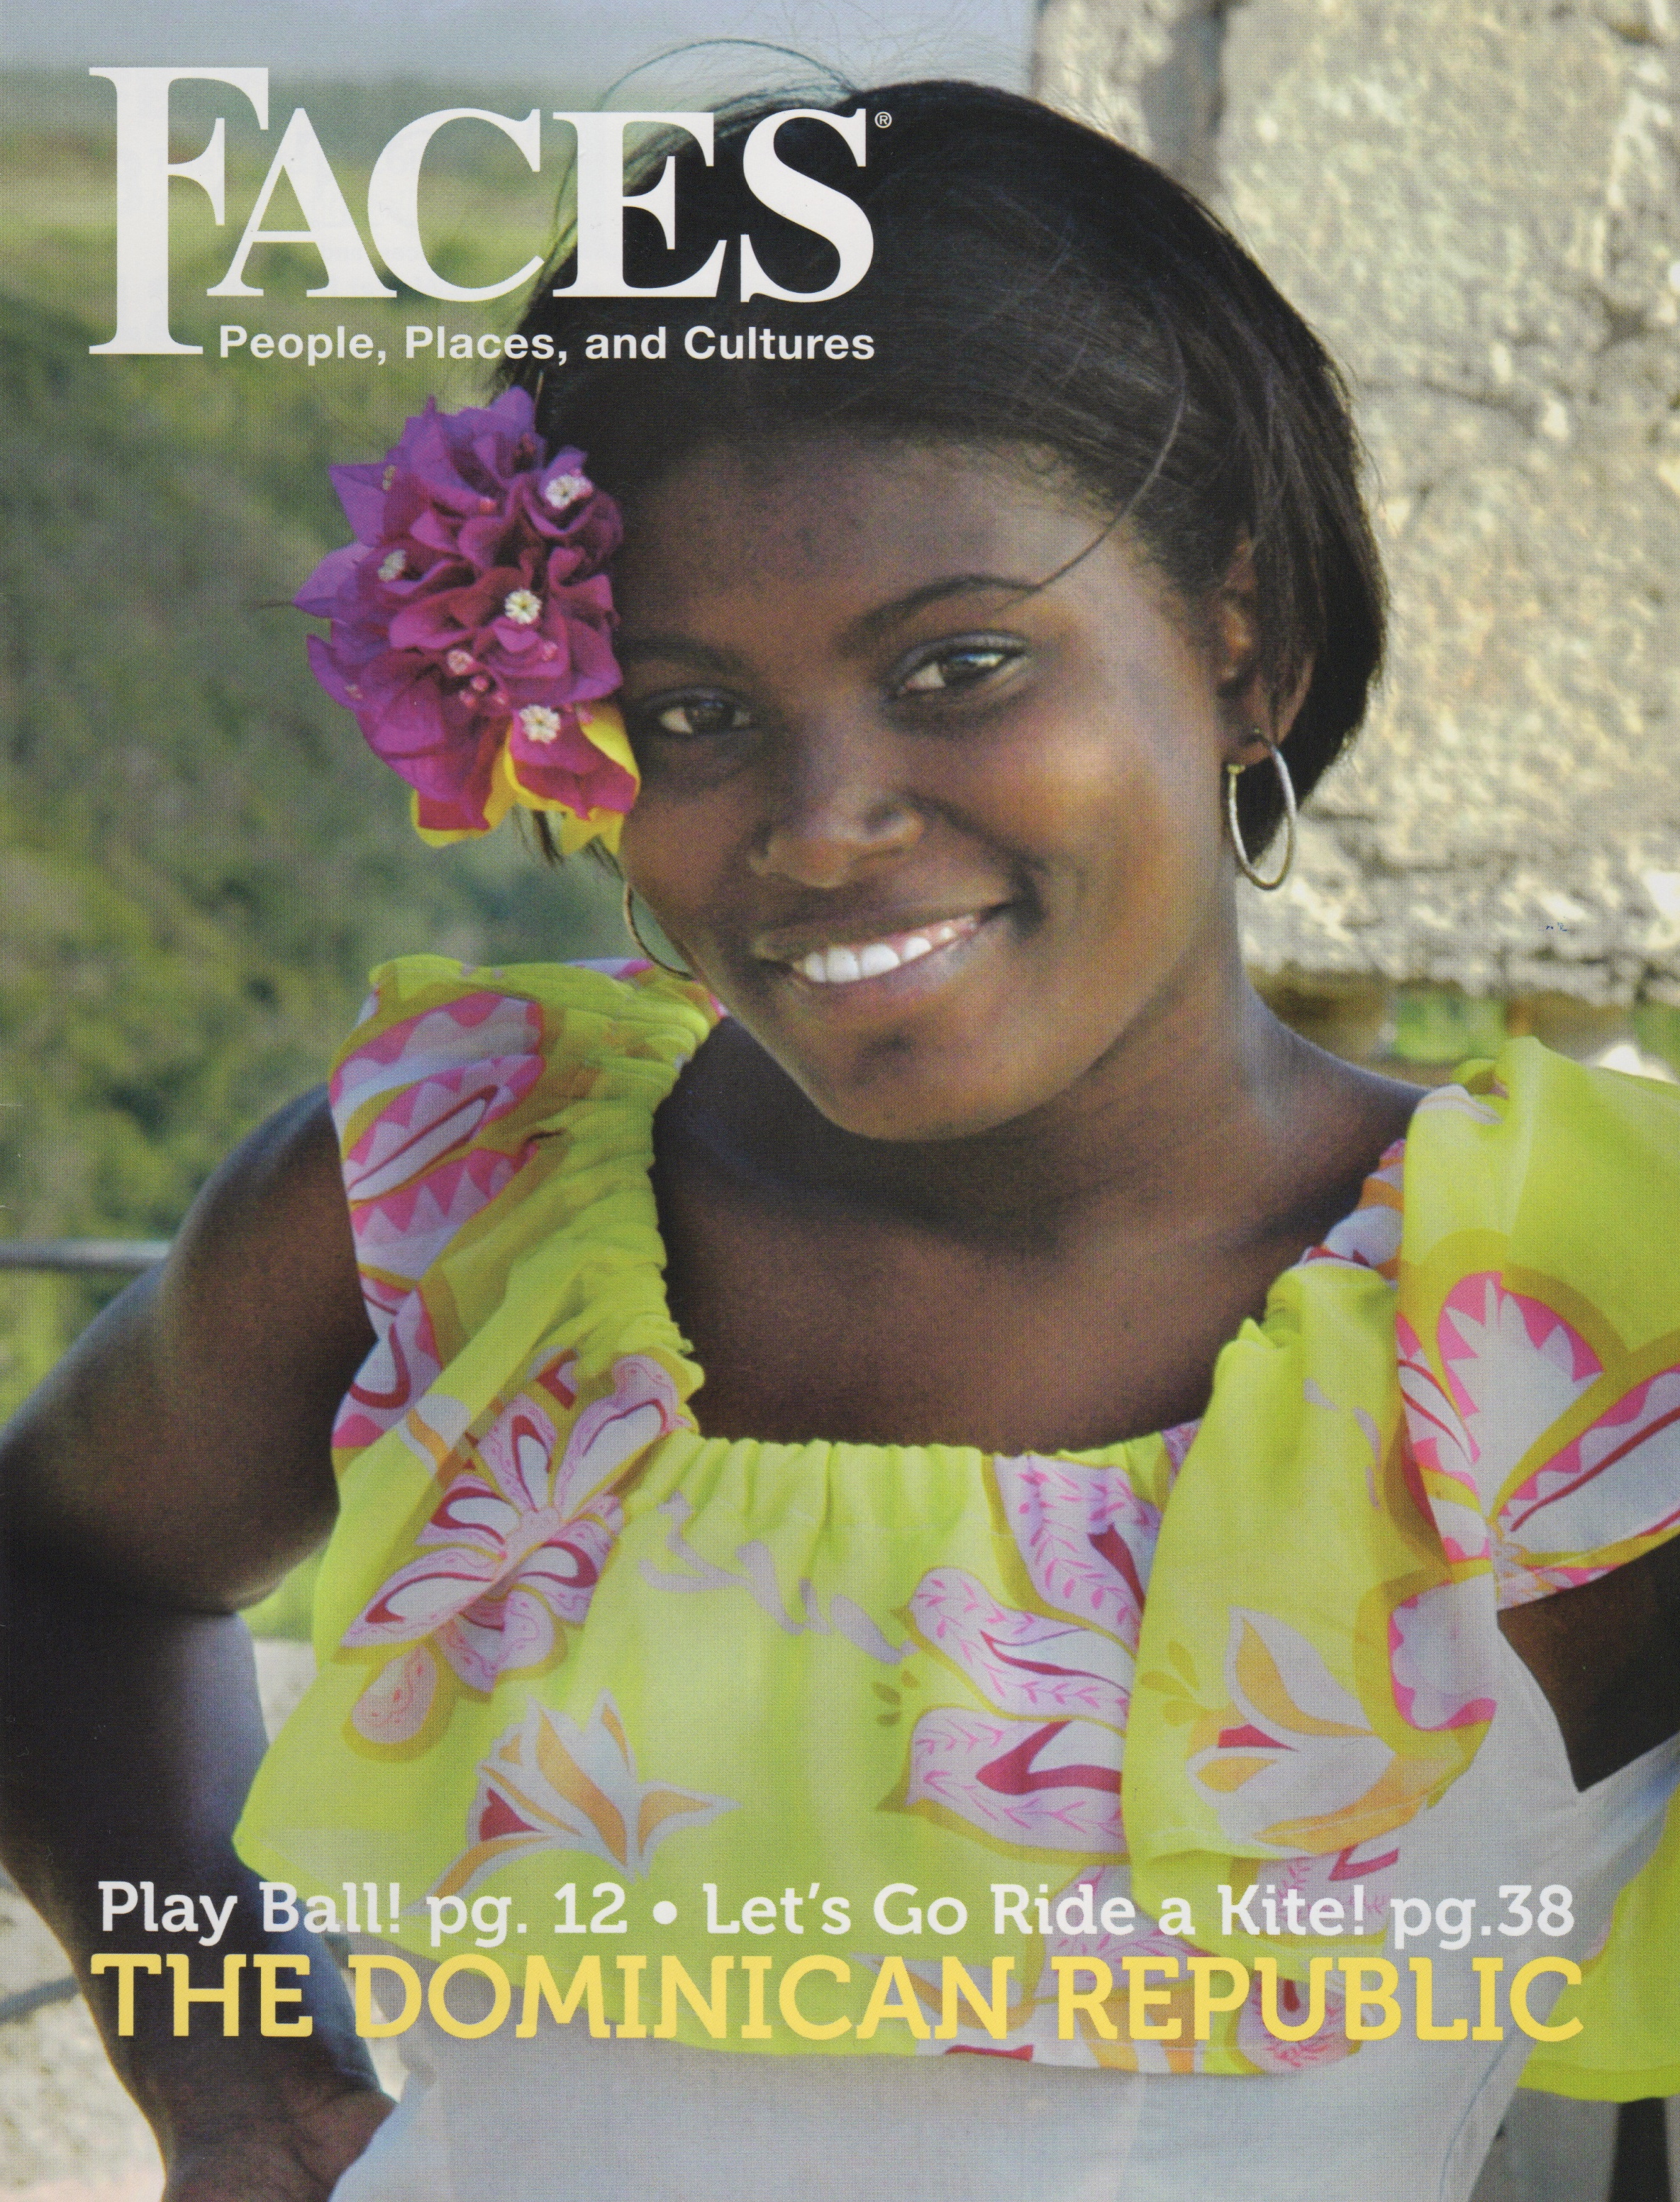 FACES Magazine Issue: The Dominican Republic – 3 Articles: Baseball Is A Way Of Life, Dominican Republic's Top Baseball Stars, Baseball Next Stars: Dominican Youth Academies